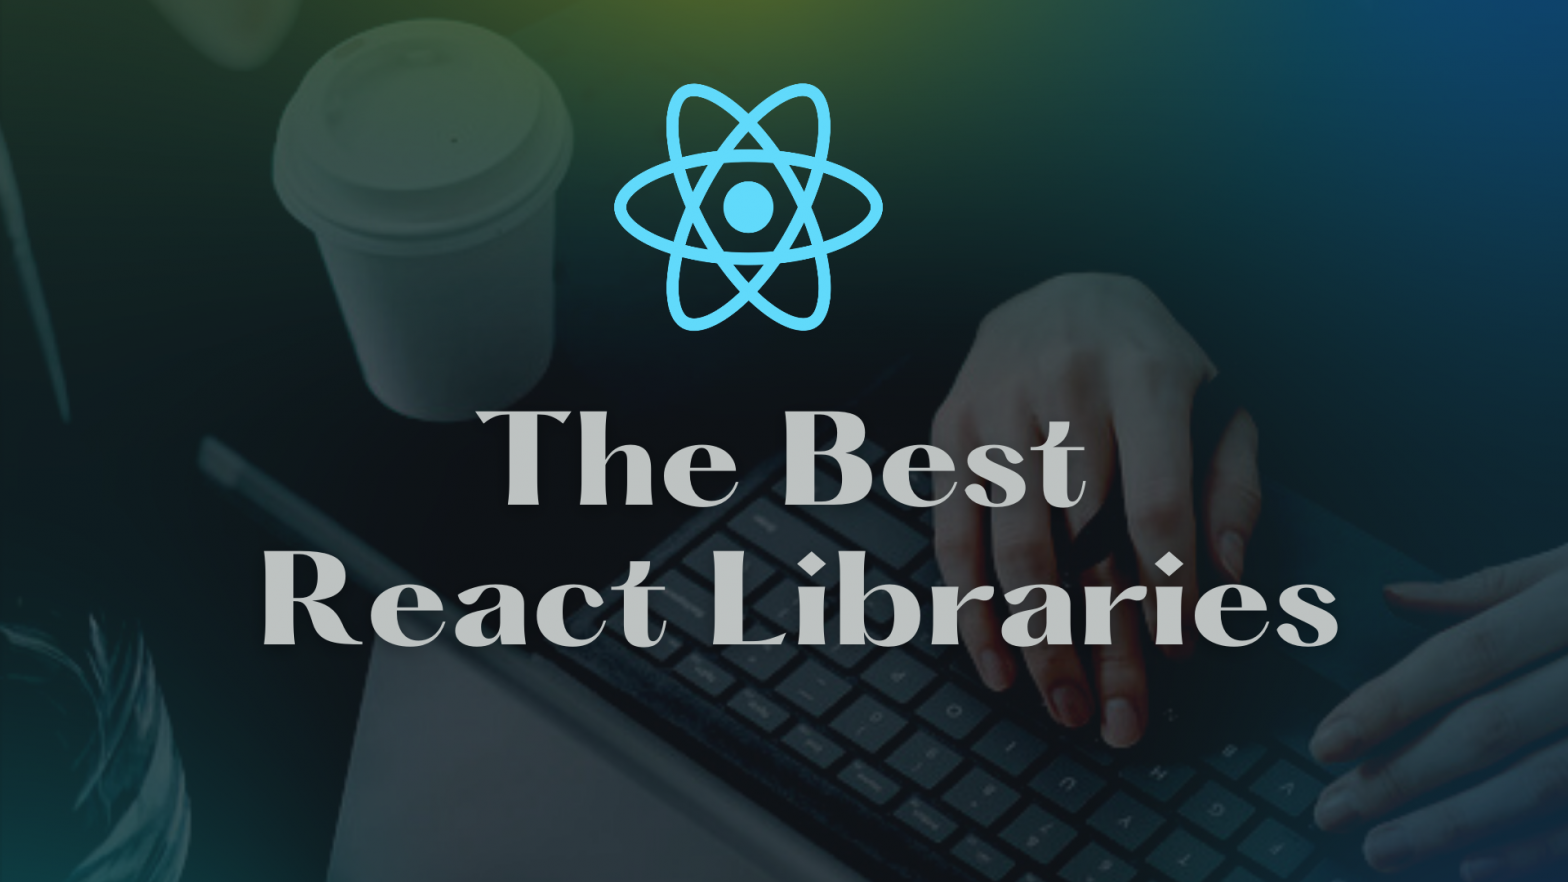 The Best React Libraries to follow in 2021